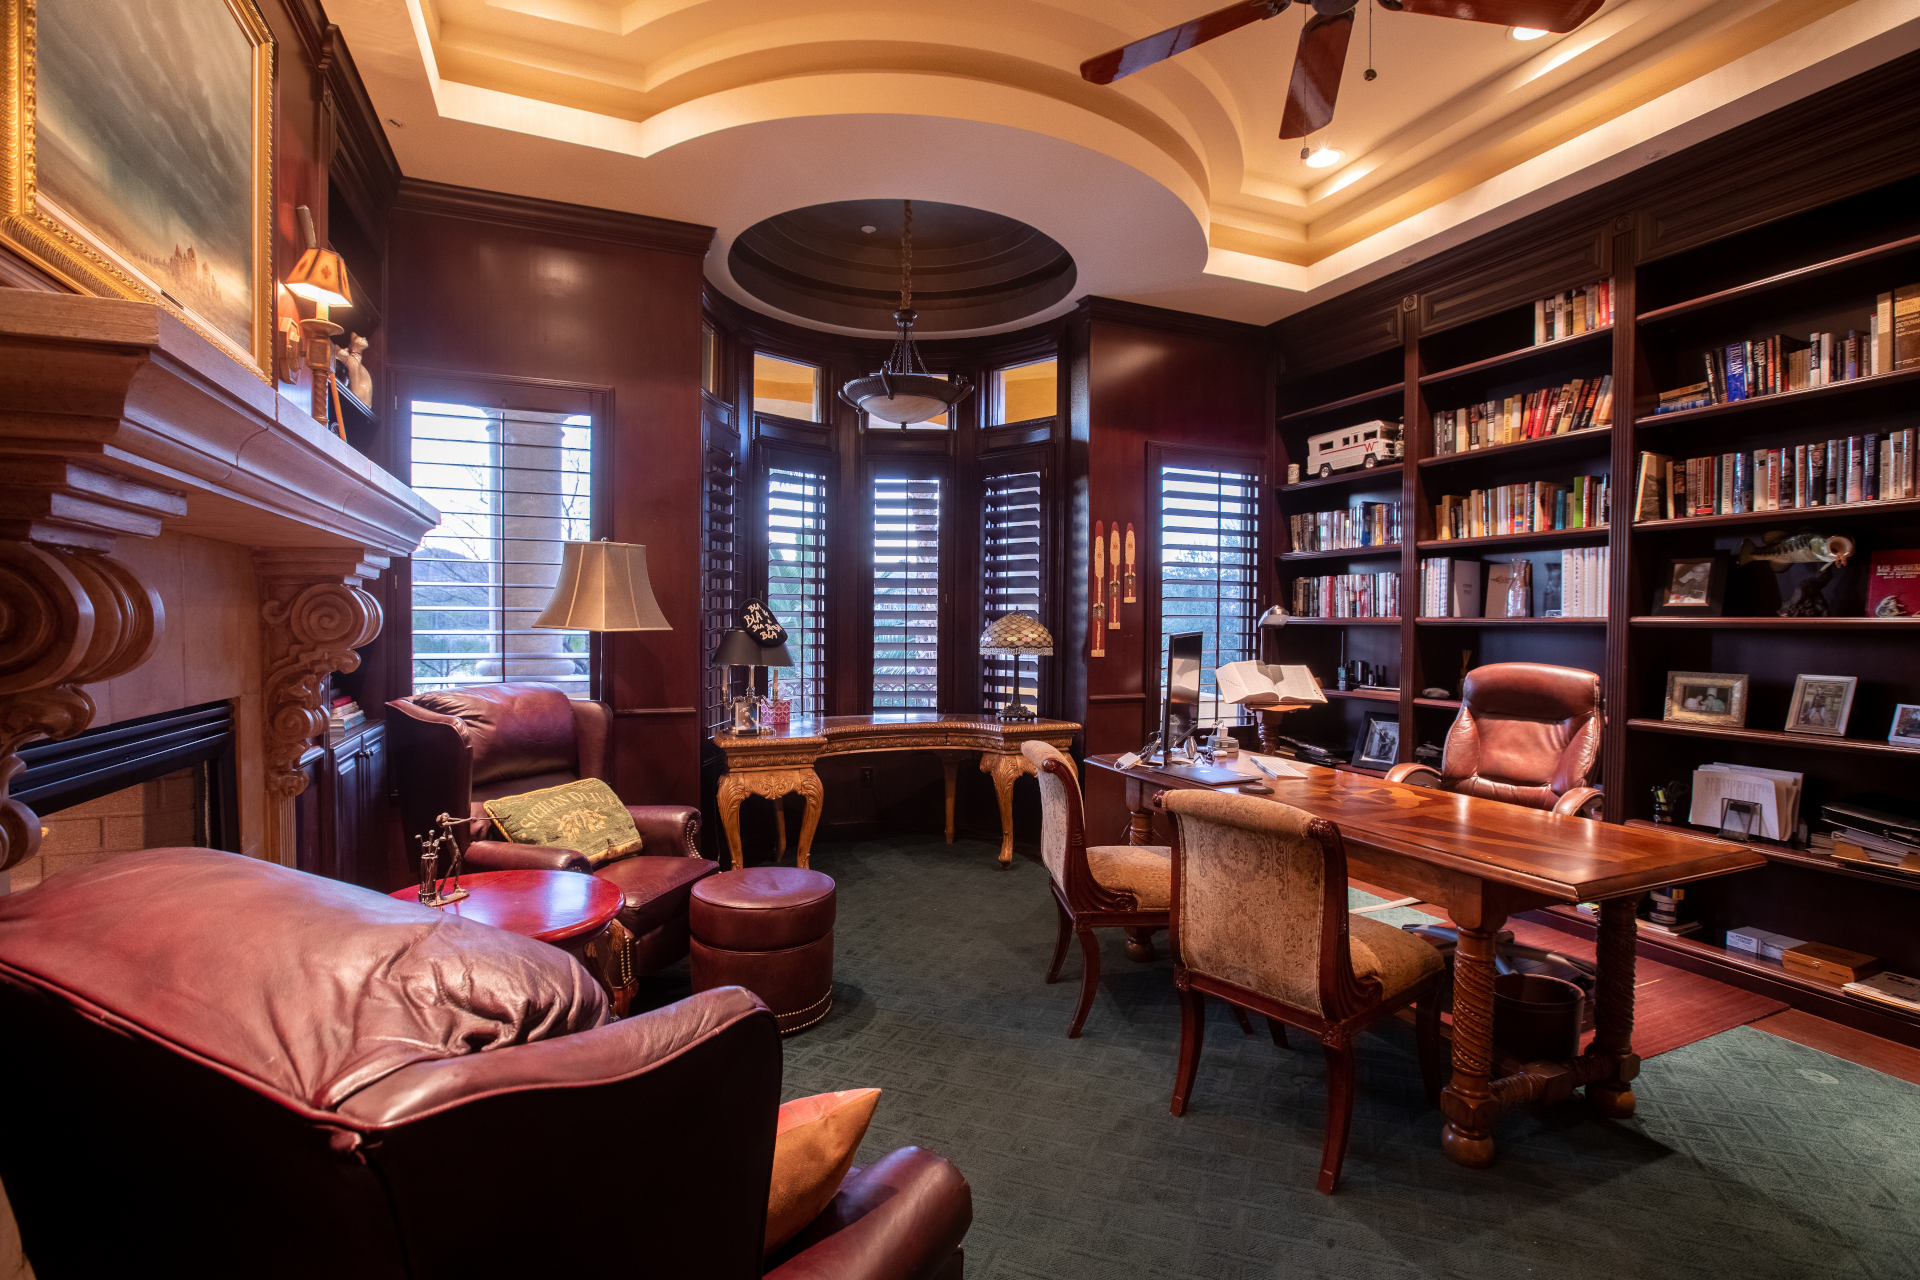 A beautiful wood-panelled library with office space is among the lavish appointments at this grand, Mediterranean-inspired villa in the gated Marseilles South Shore neighborhood of Lake Las Vegas.